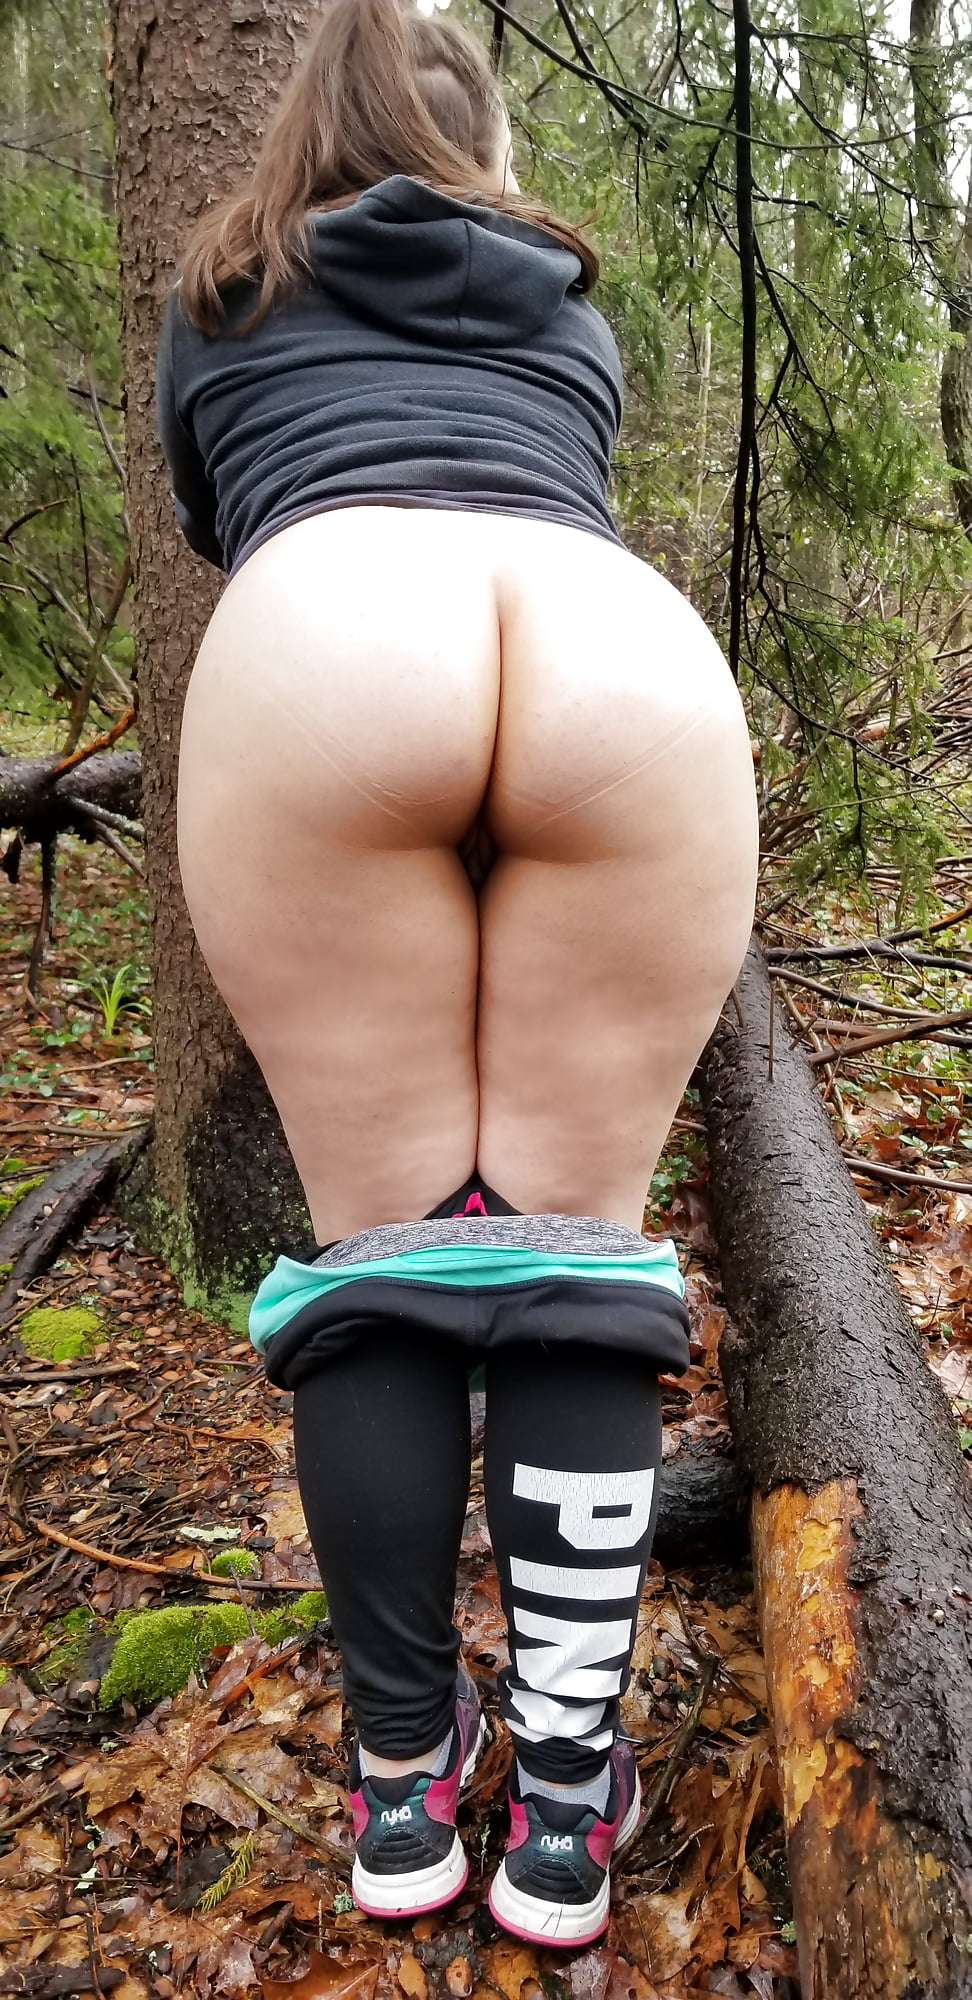 wife asian Bubble outdoor